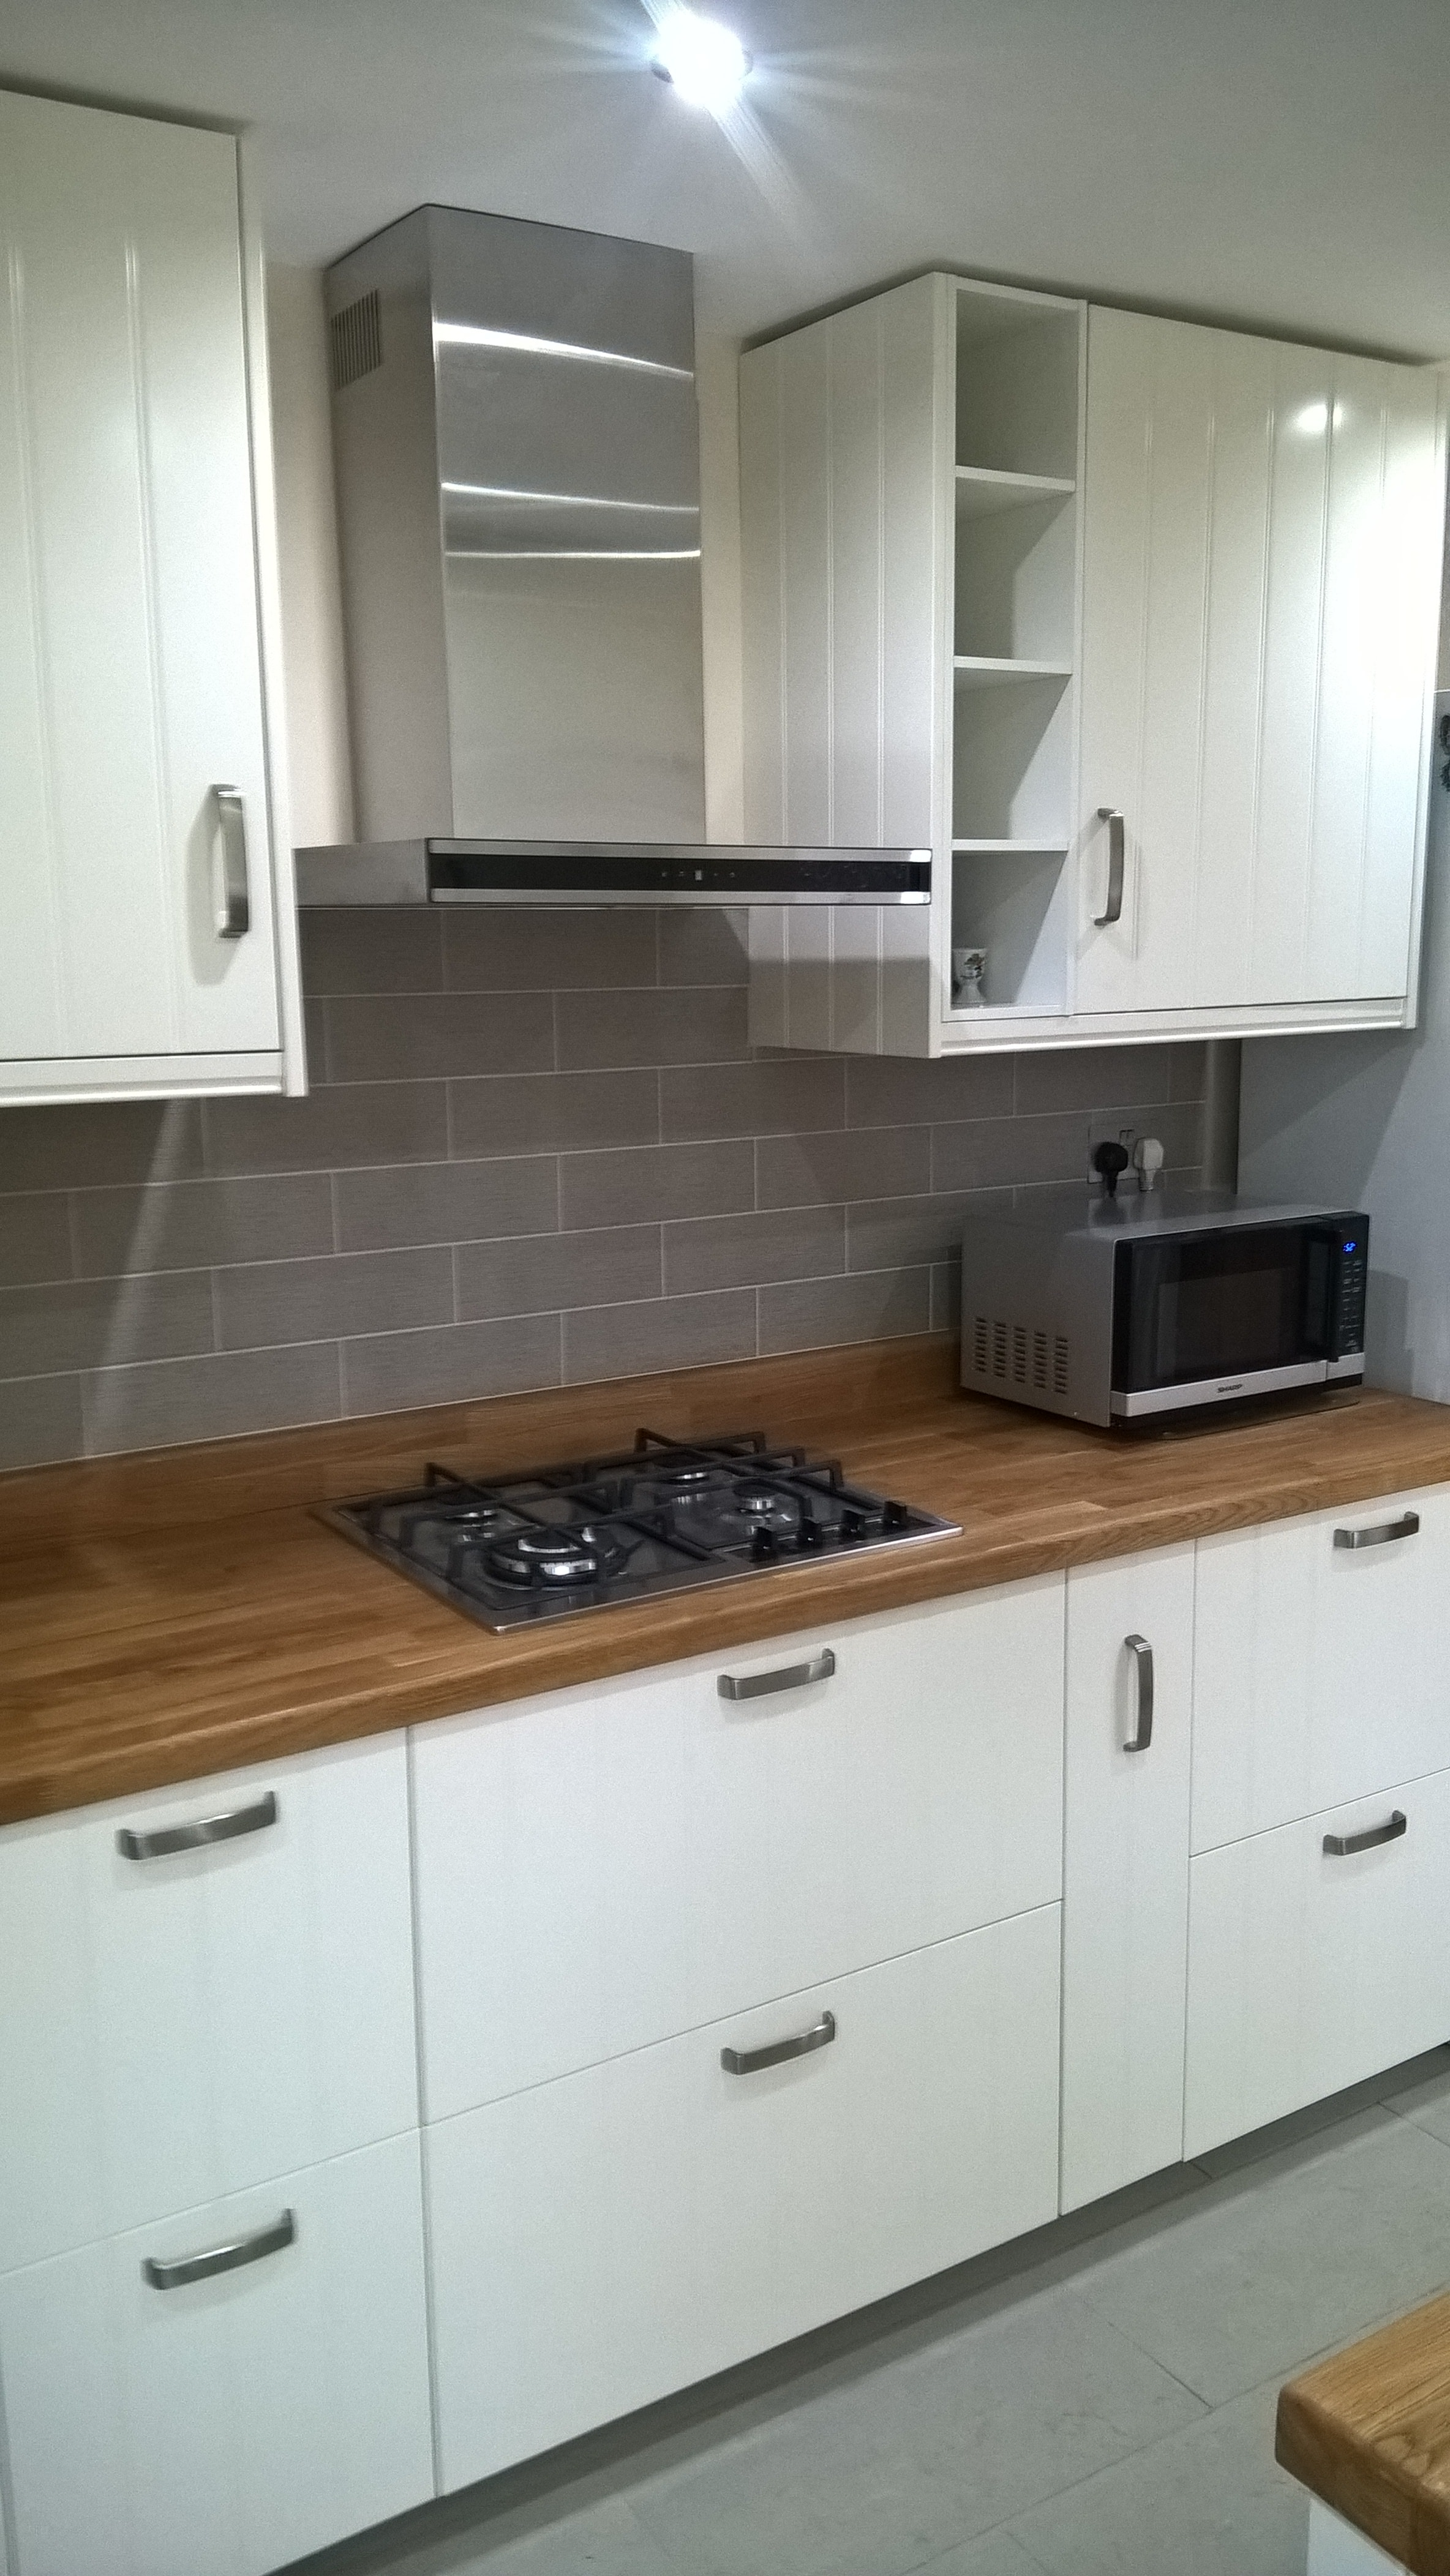 Newly built countertop, cupboards and stove